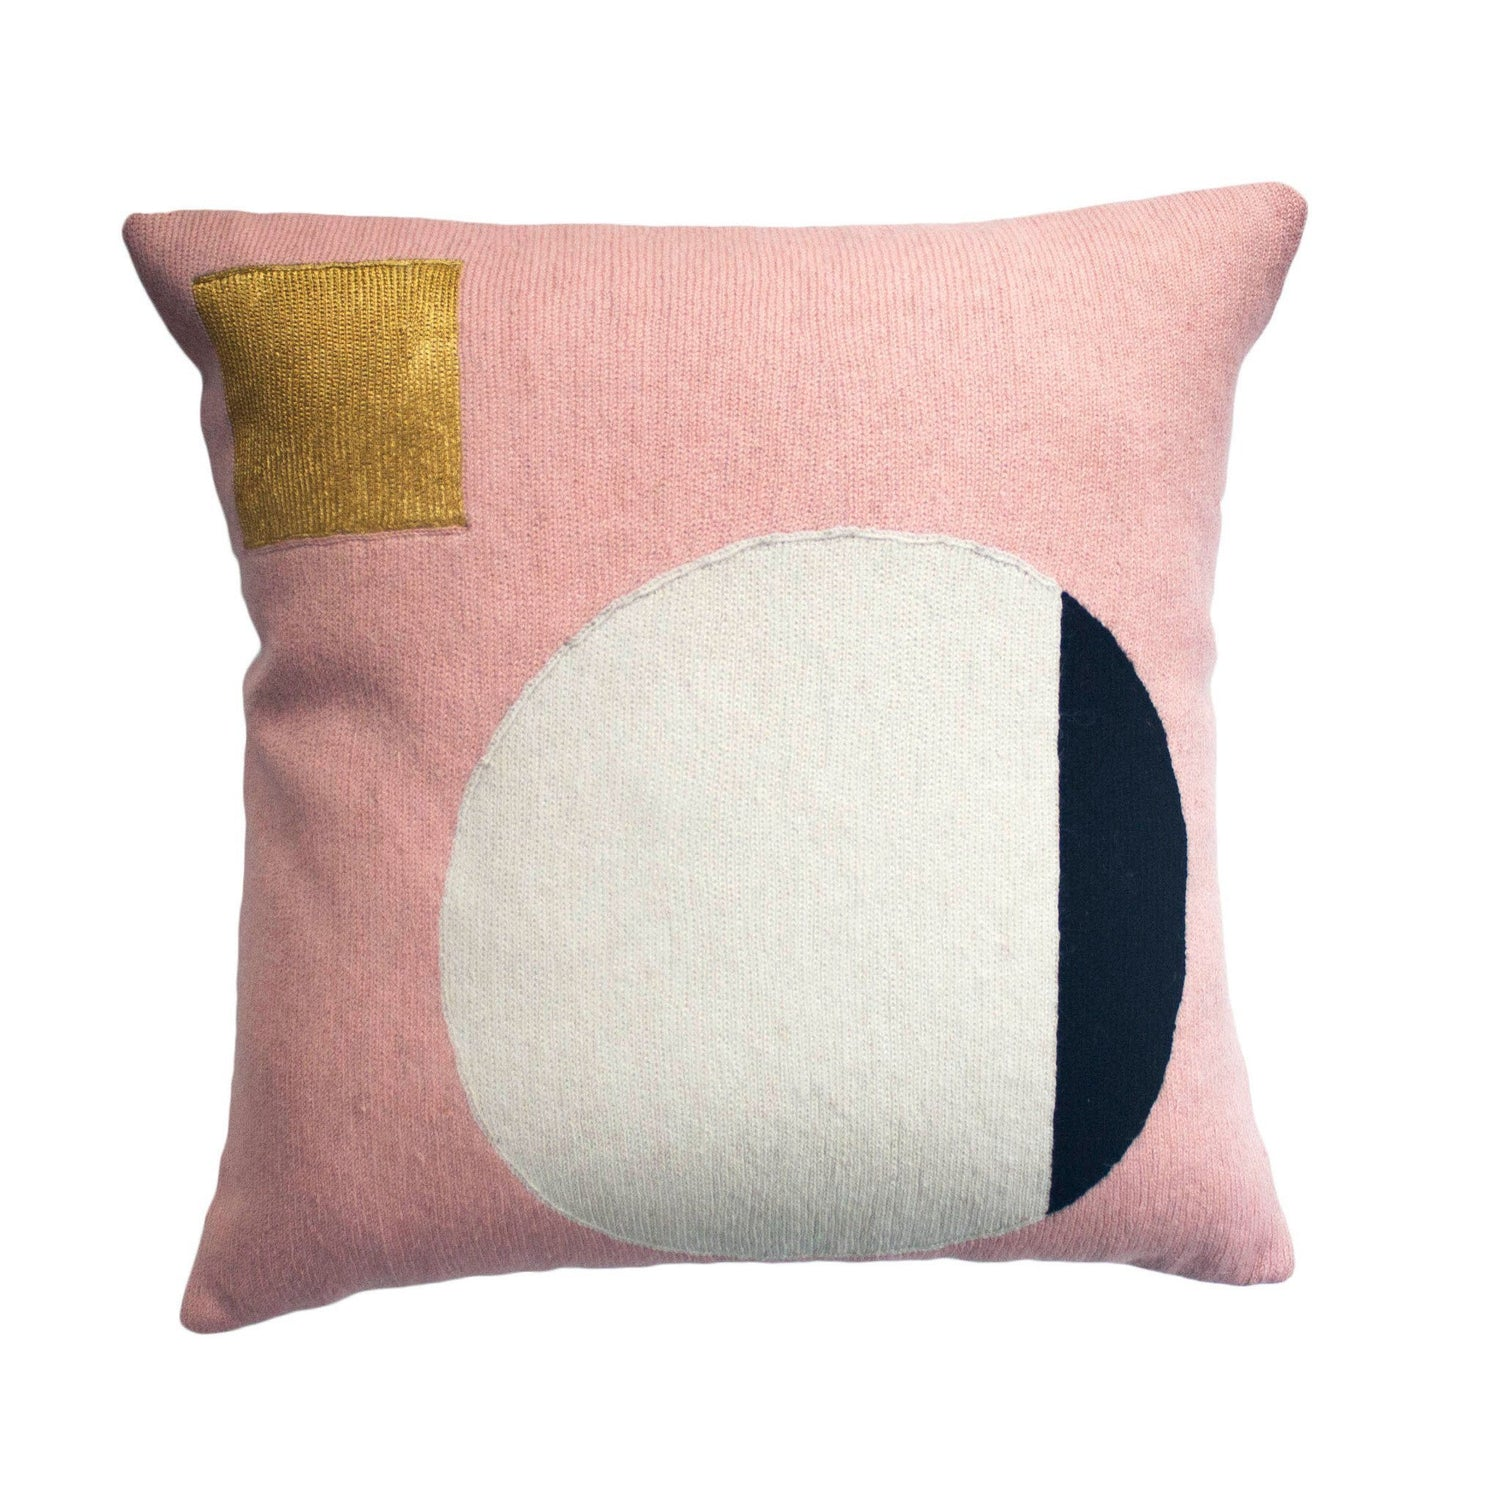 Leah Singh DAPHNE CIRCLE PILLOW IN GOLD Pillow Leah Singh